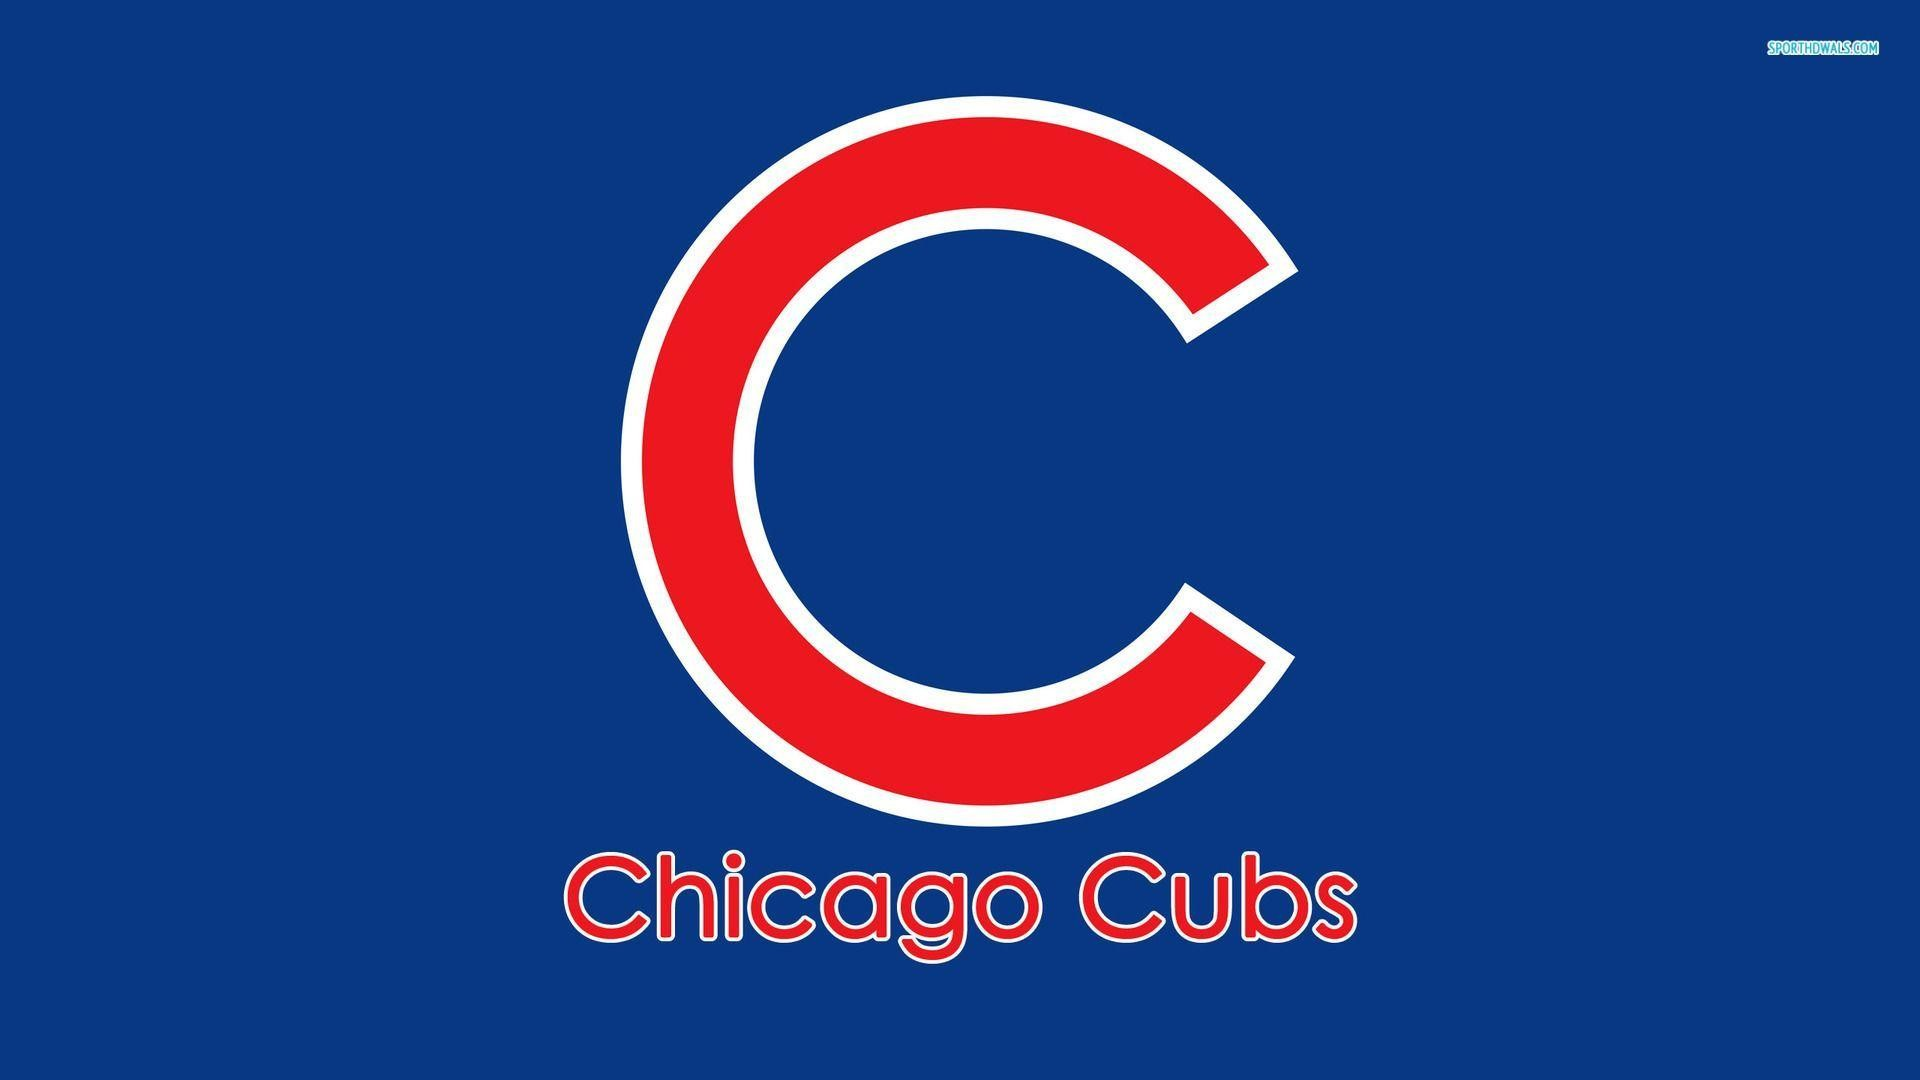 Free Chicago Cubs wallpaper | Chicago Cubs wallpapers